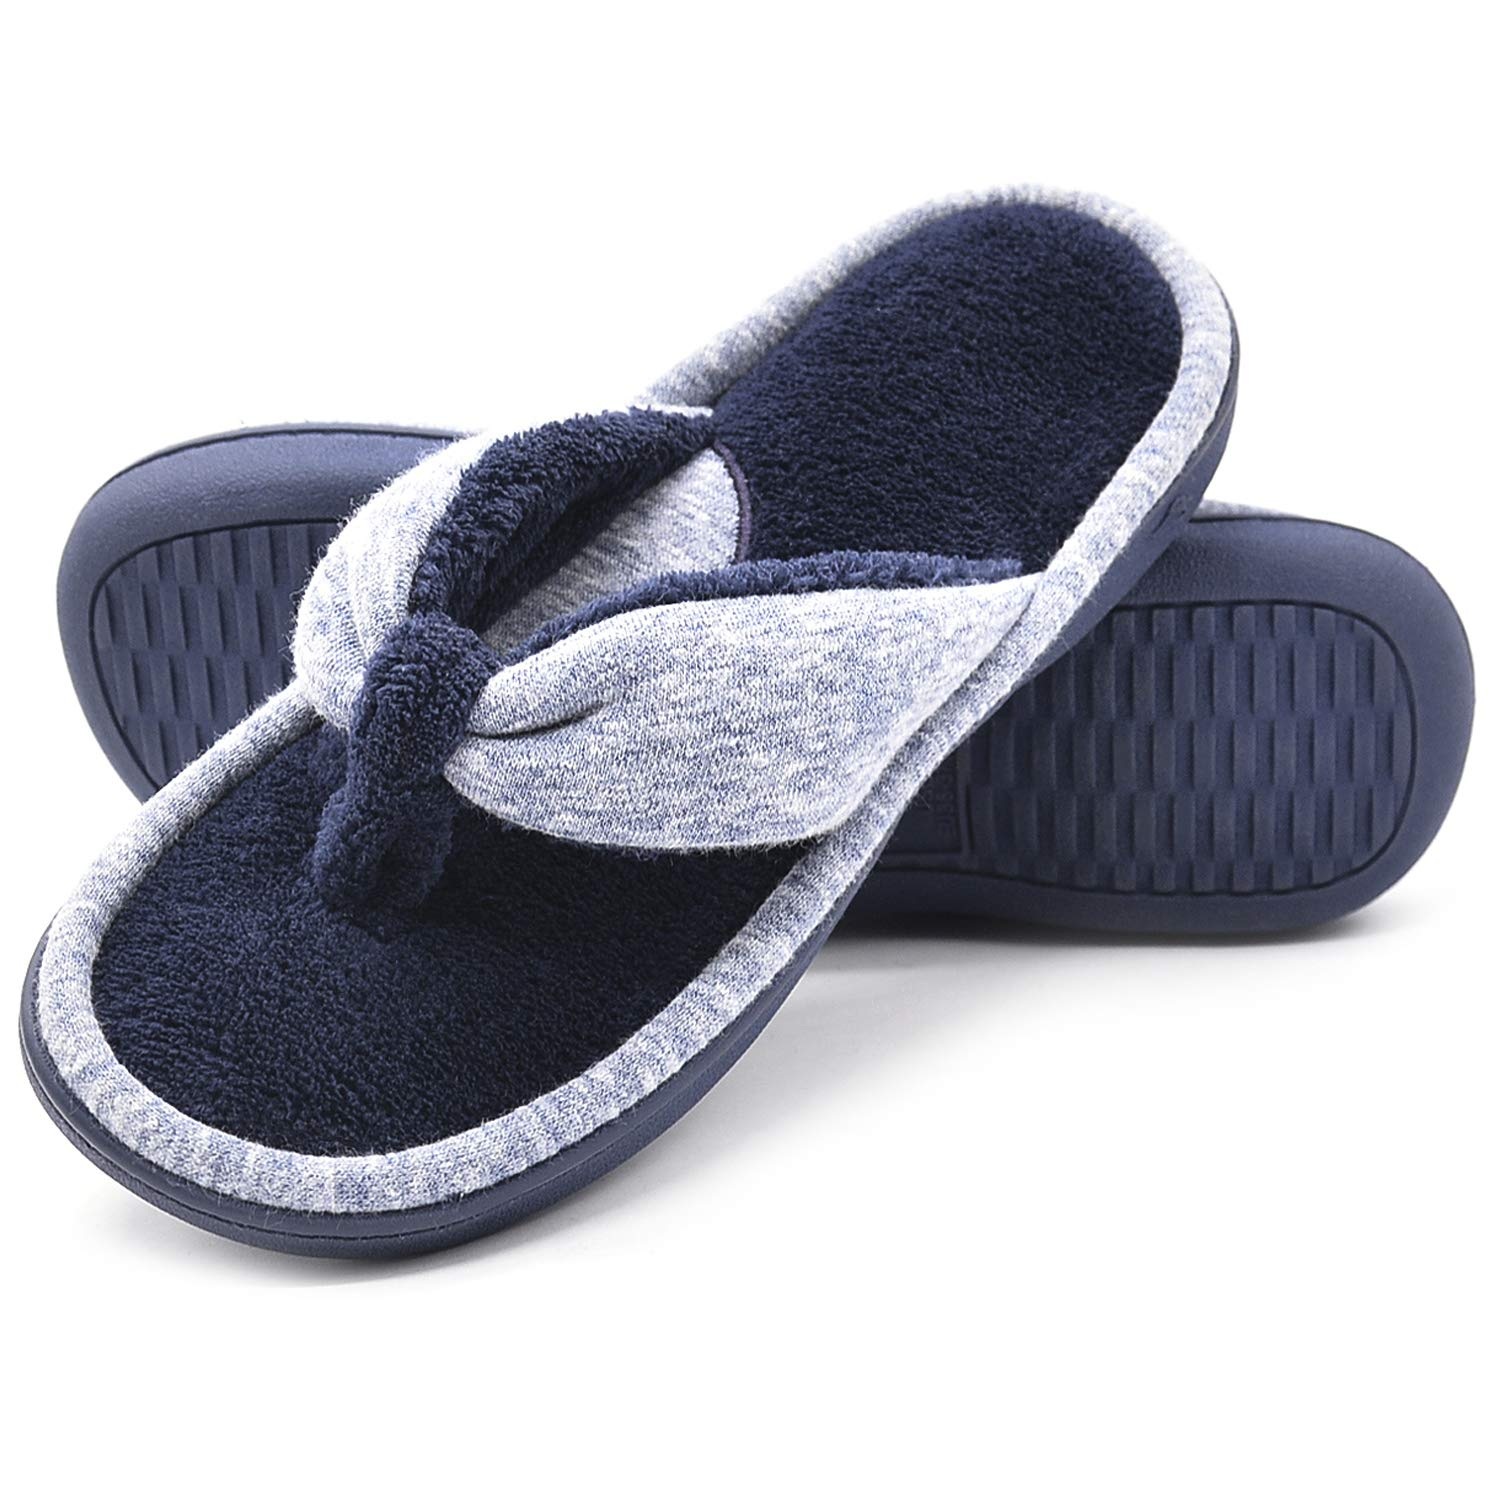 Wishcotton Women's Adjustable Memory Foam Spa Thong House Shoes Fluffy Flip Flop Slippers (L, Navy)